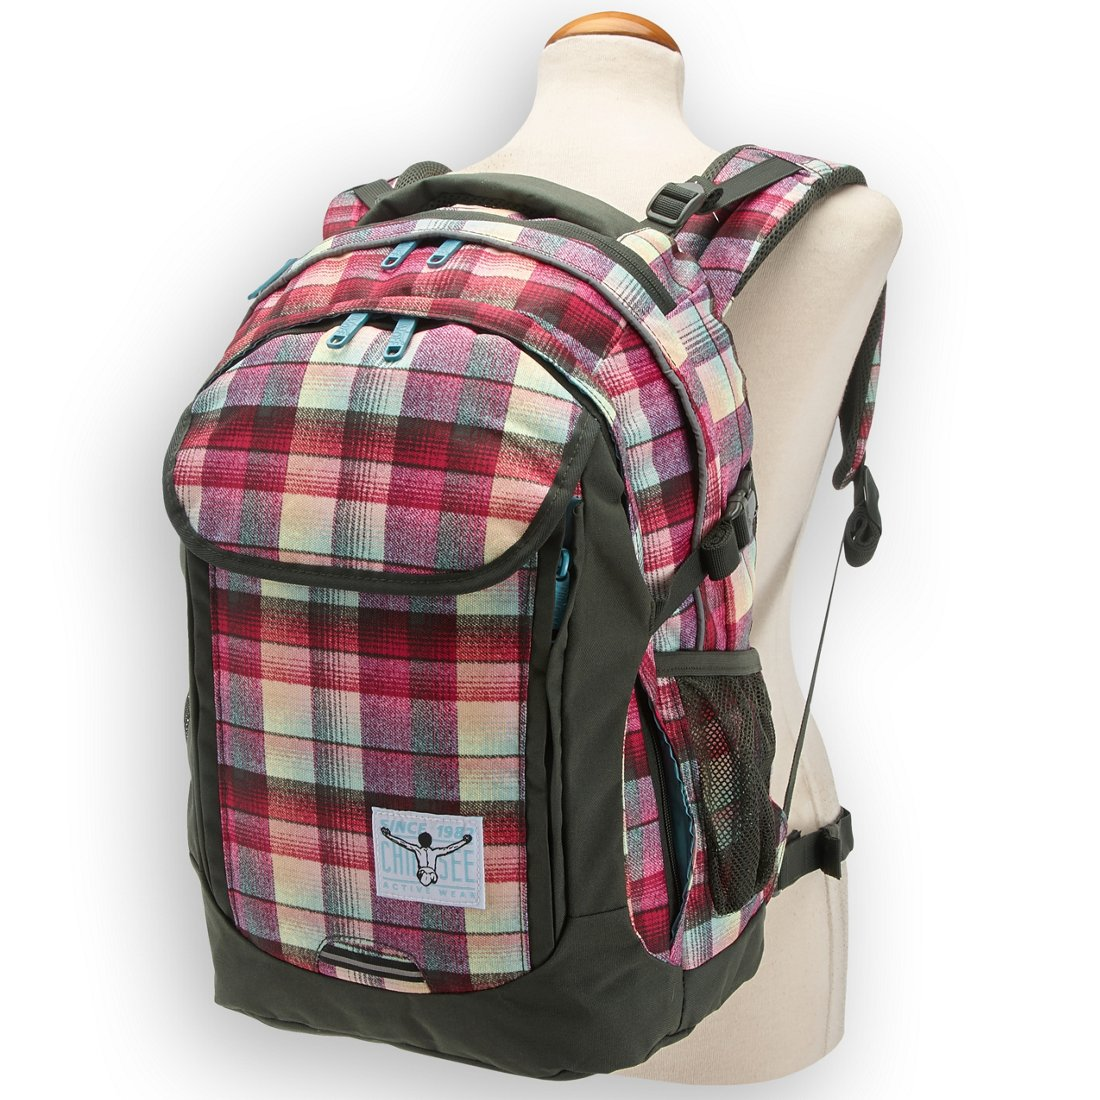 d2d396213b0b0 Chiemsee Sports   Travel Bags Cambridge Backpack 49 cm - checky chan pink.  Previous